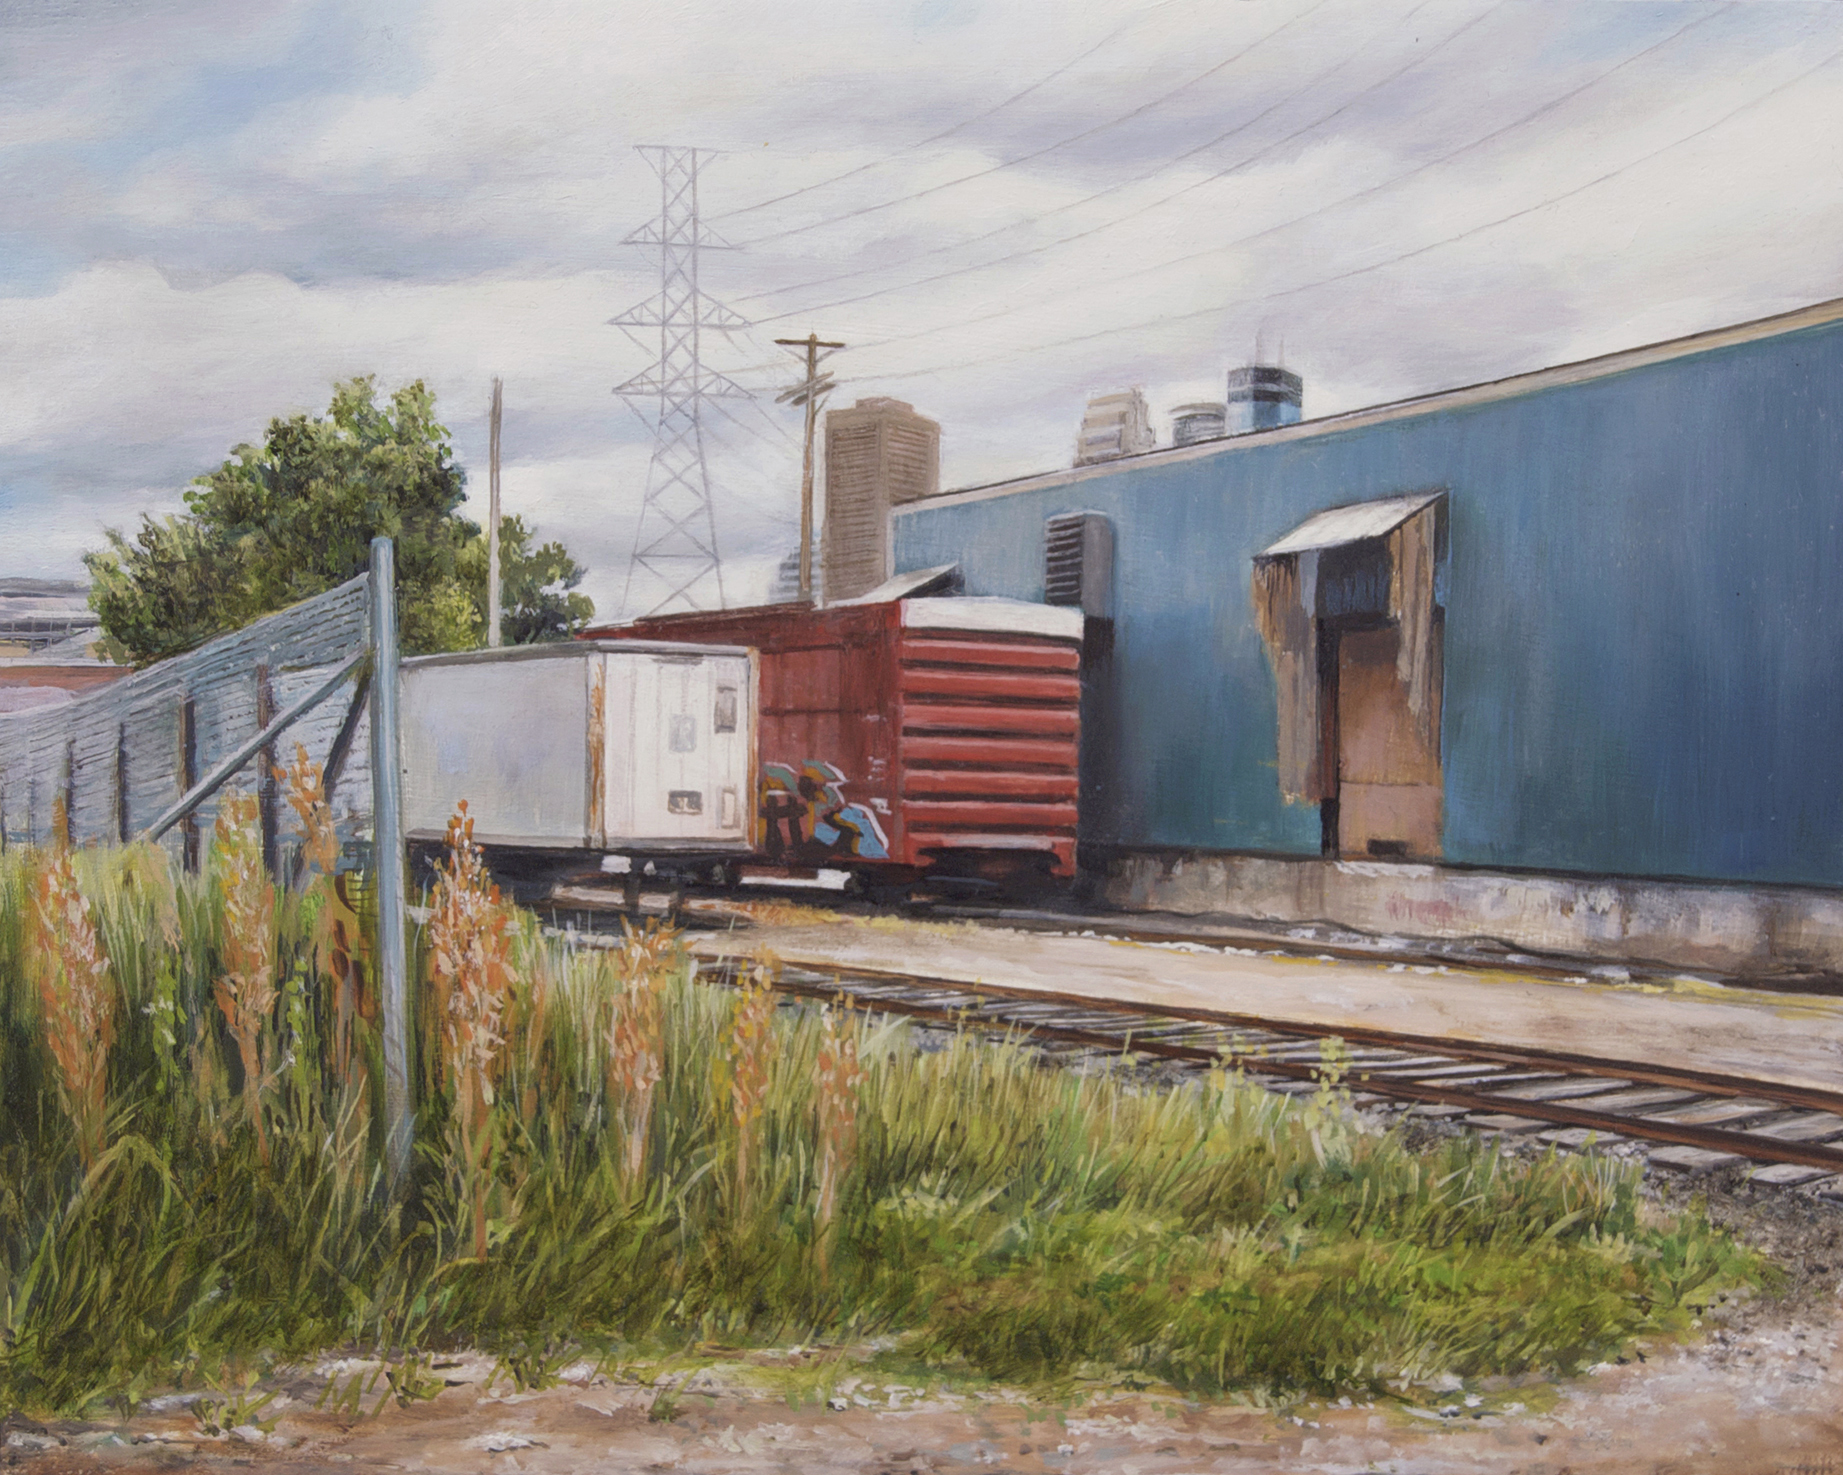 Train Cars at North Irving     Avenue, Minneapolis   2014  Oil on panel  8 x 10 inches